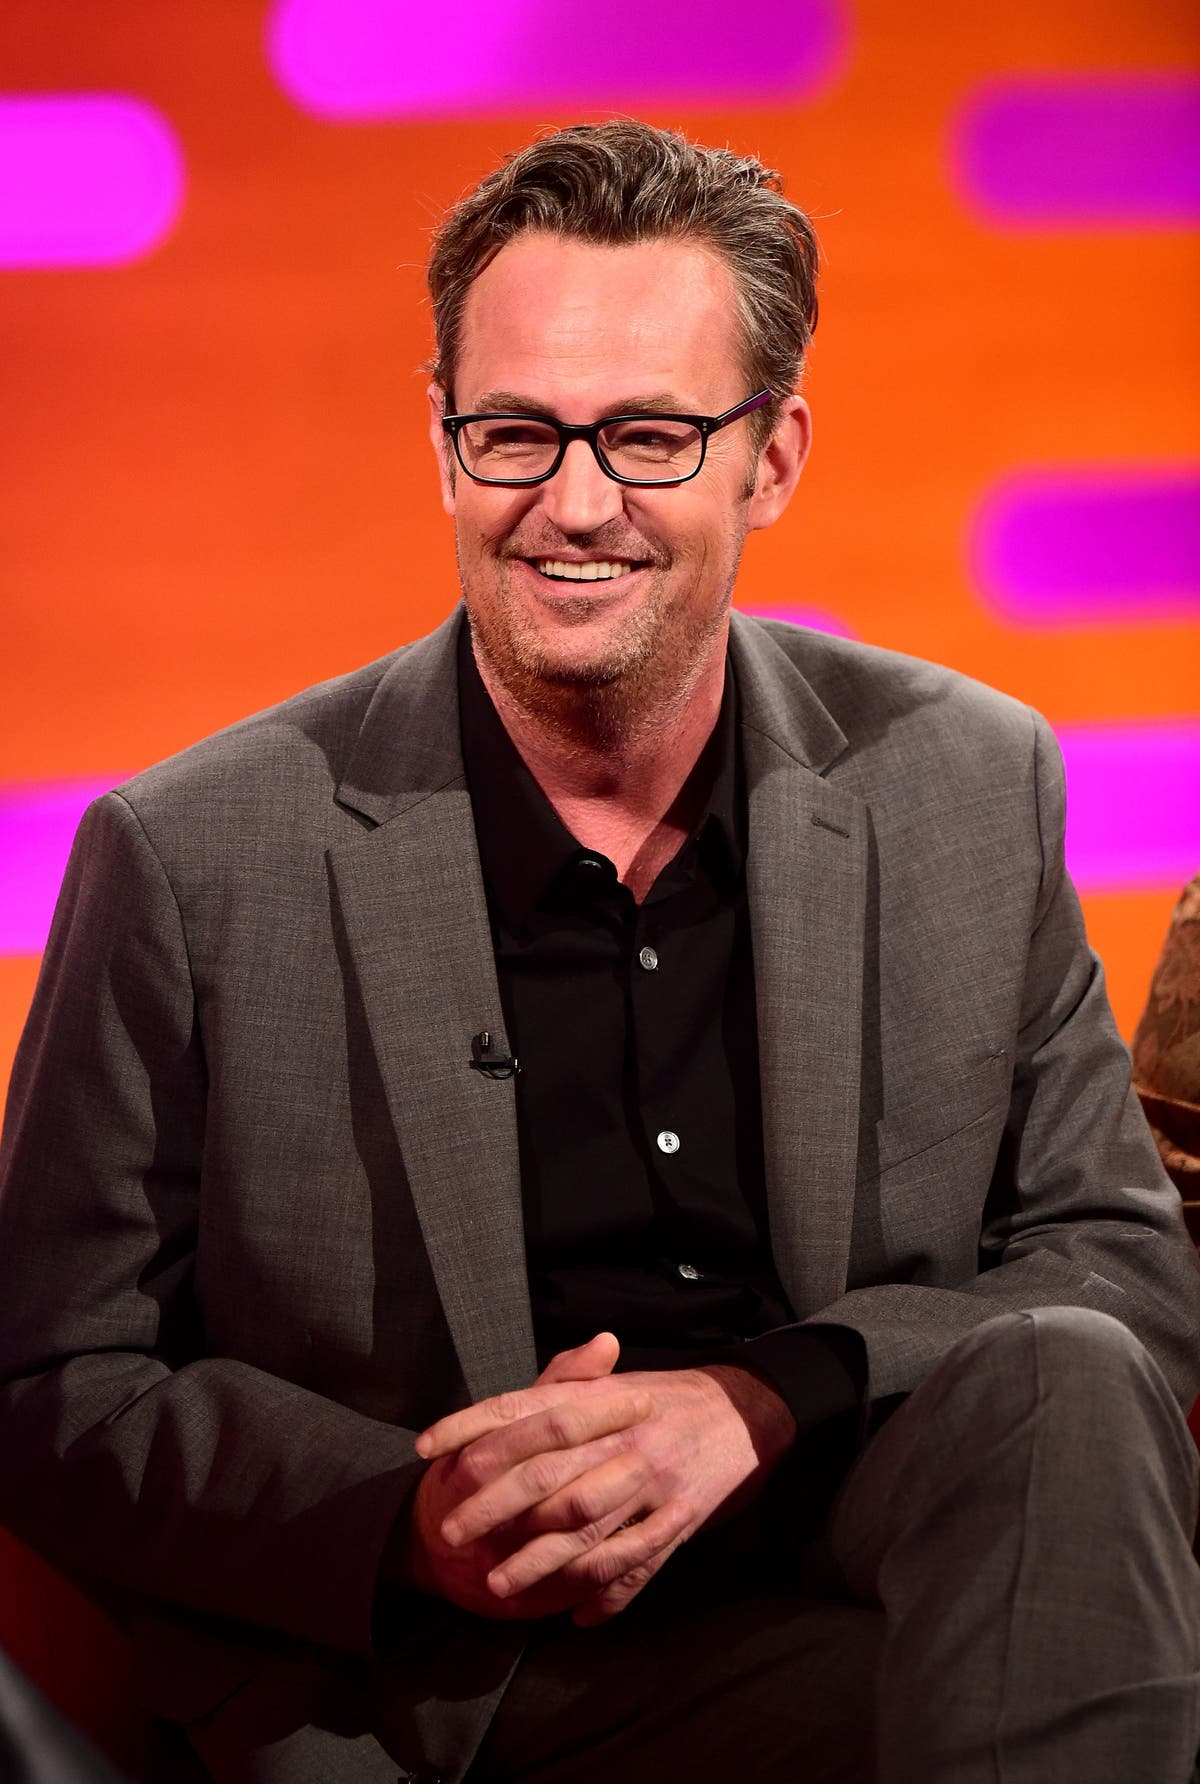 Matthew Perry and Molly Hurwitz engagement break-up: Why calling off a wedding can be the healthiest thing